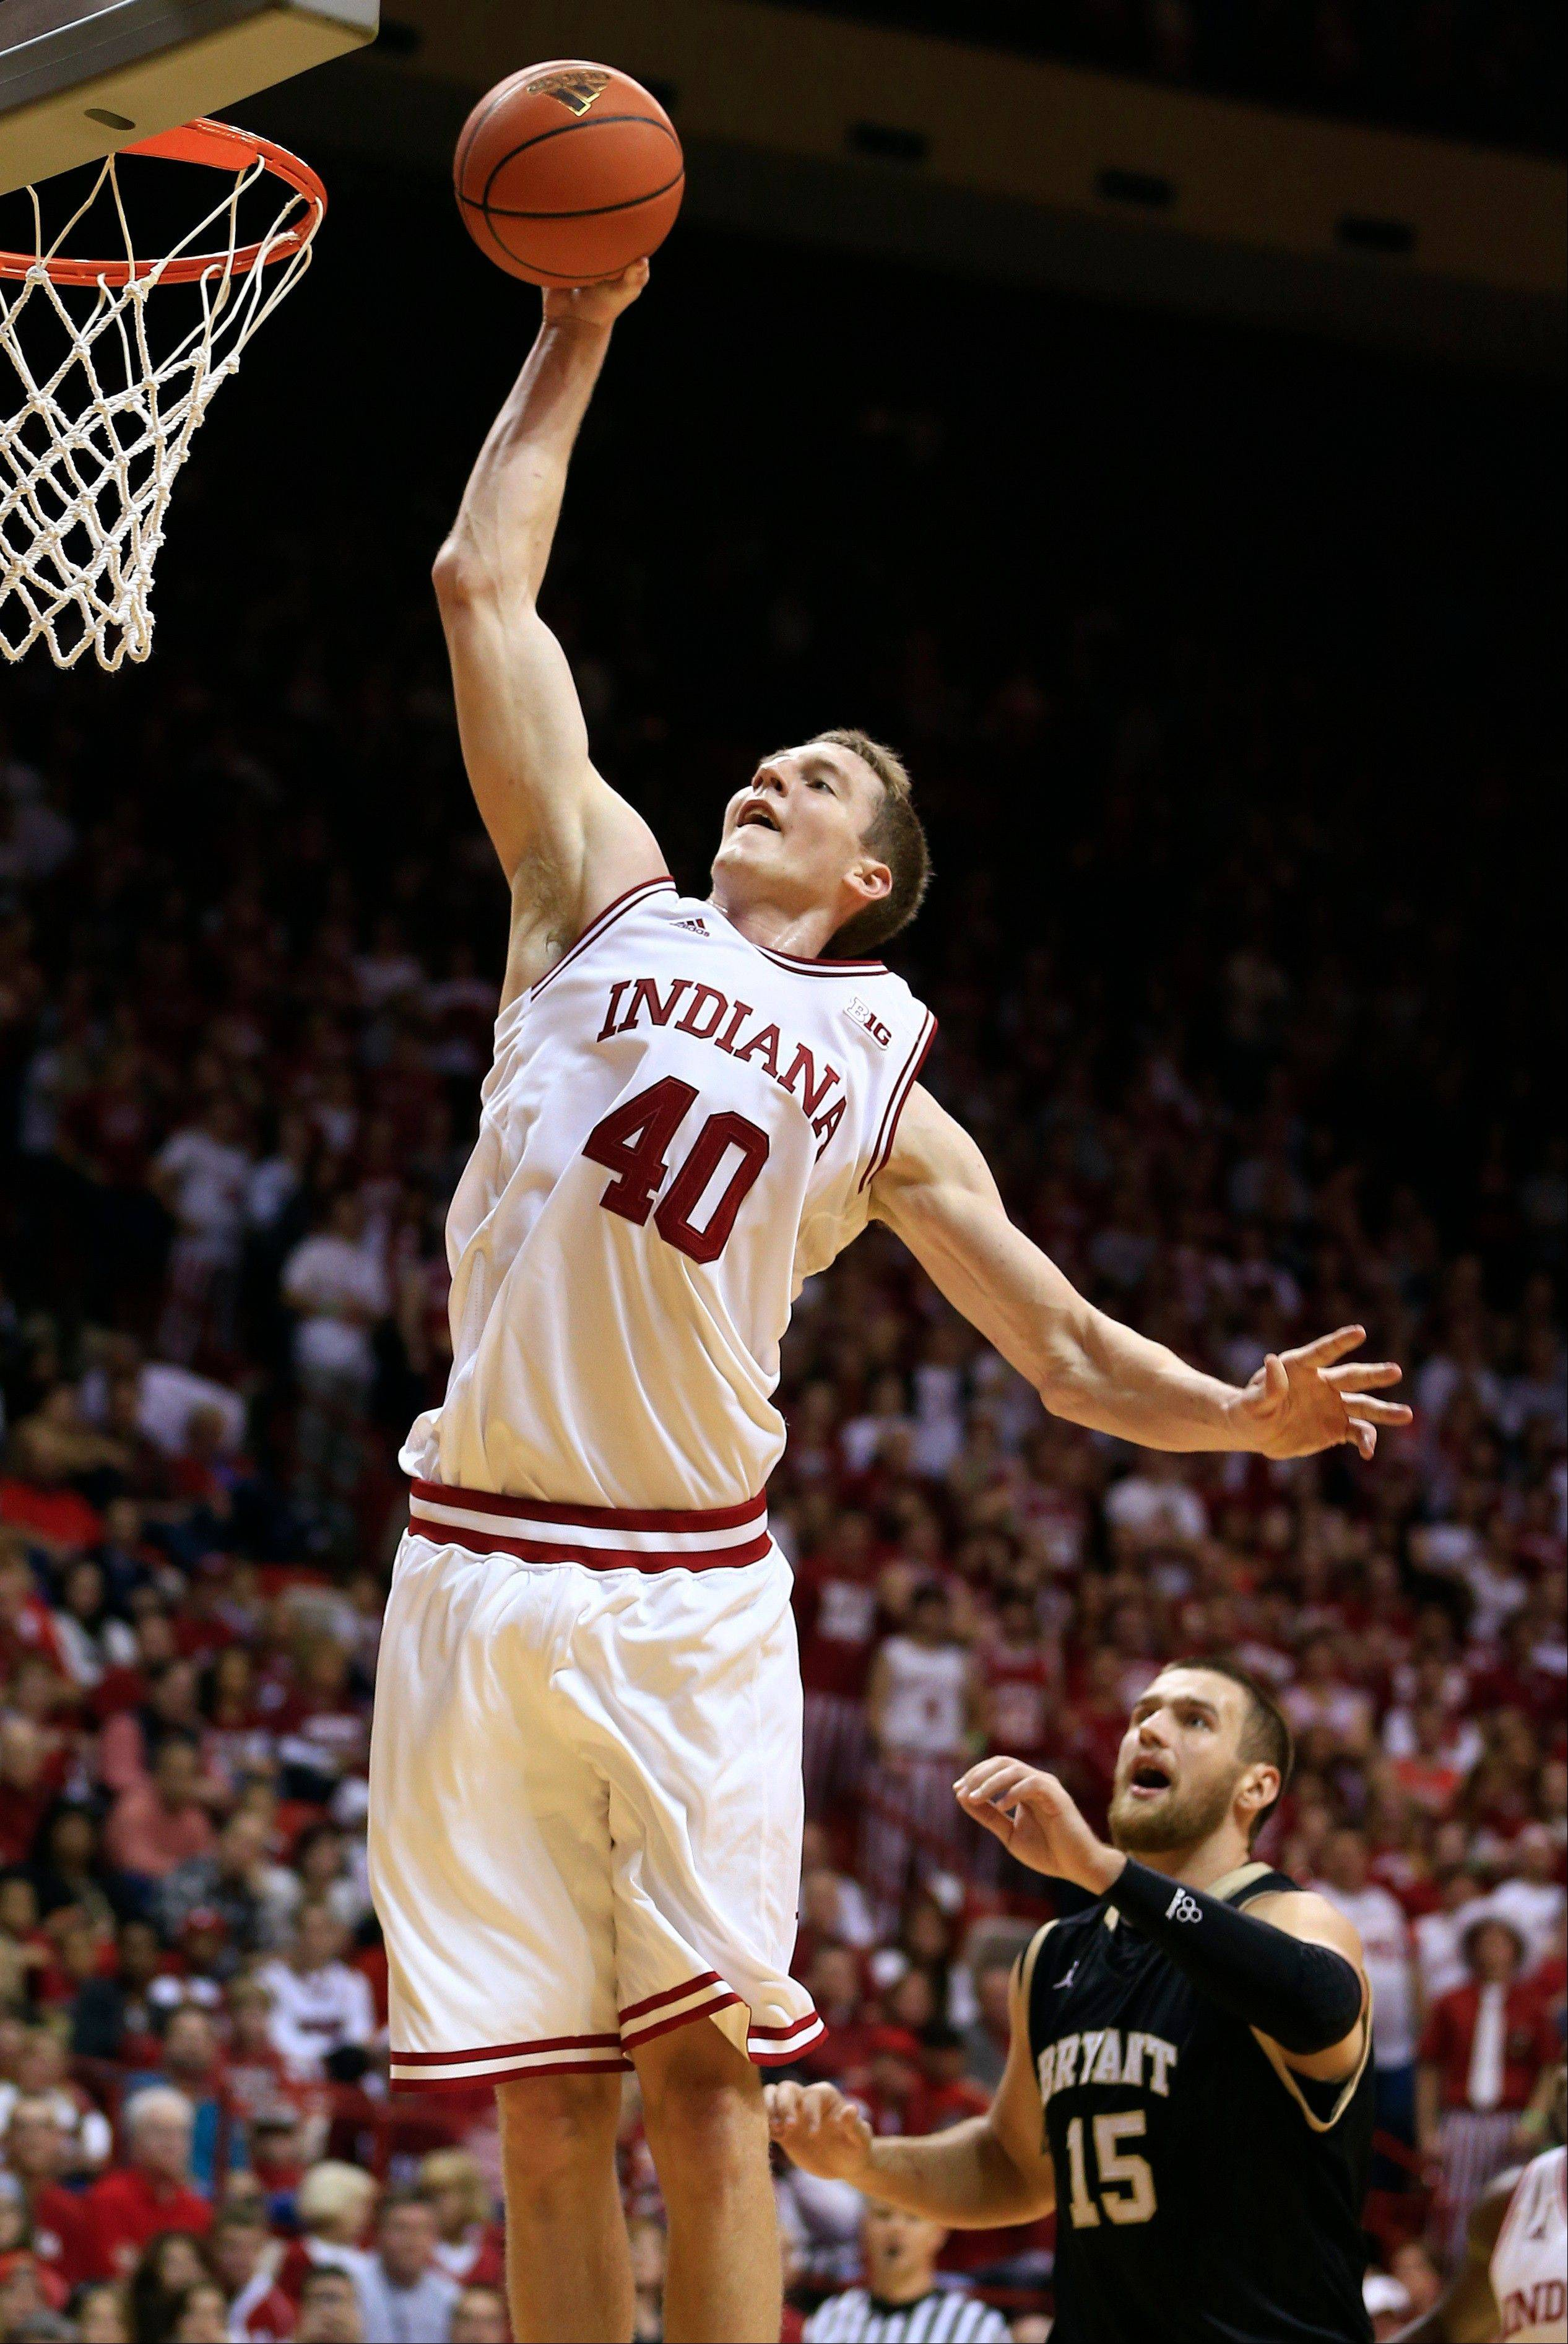 Indiana's Cody Zeller dunks against Bryant's Vlad Kondratyev Friday during the second half in Bloomington, Ind. Indiana won 97-54.